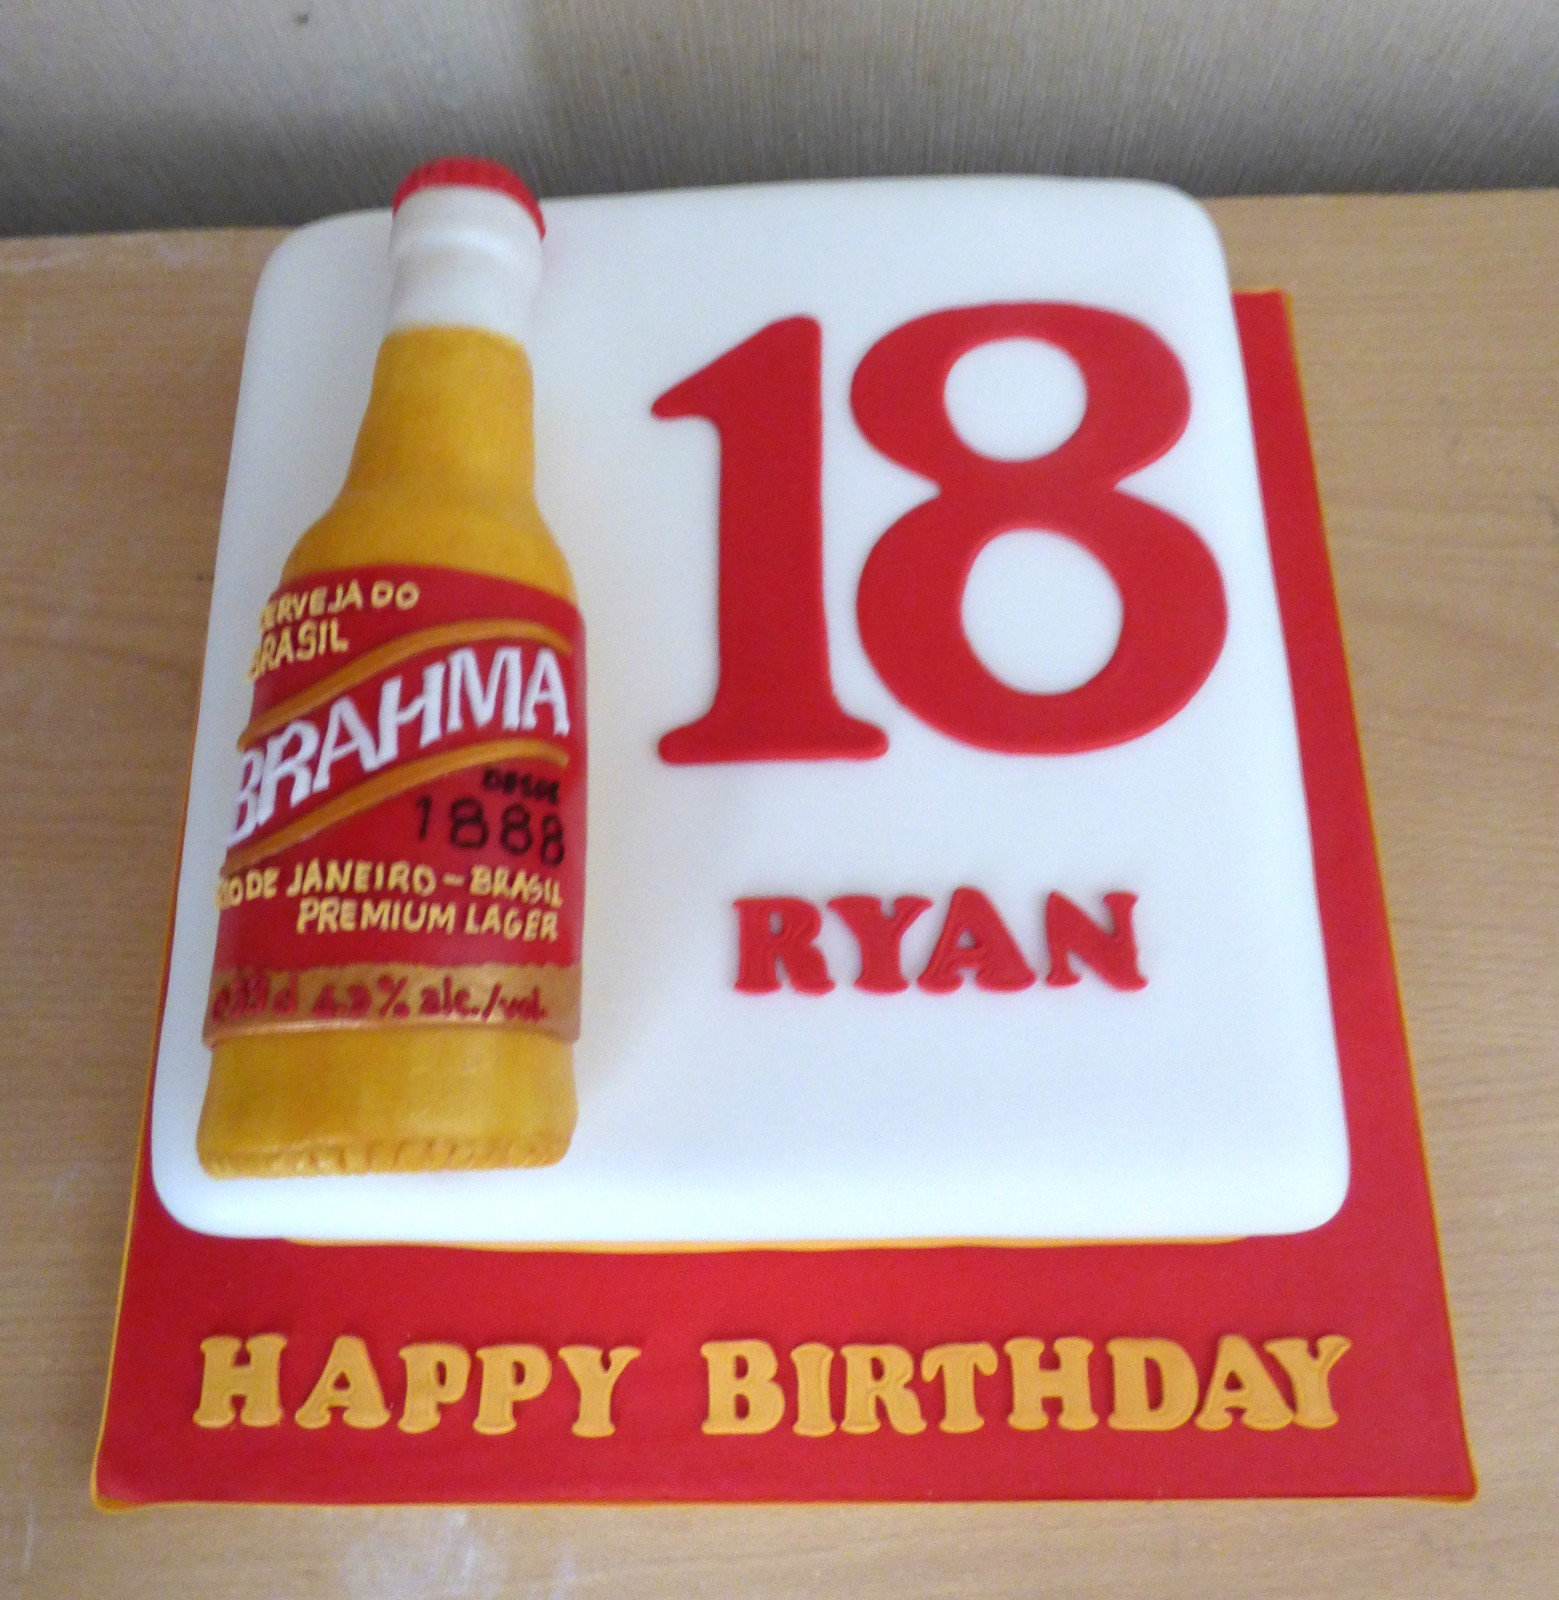 Fantastic Brahma Lager Bottle Birthday Cake Susies Cakes Personalised Birthday Cards Epsylily Jamesorg